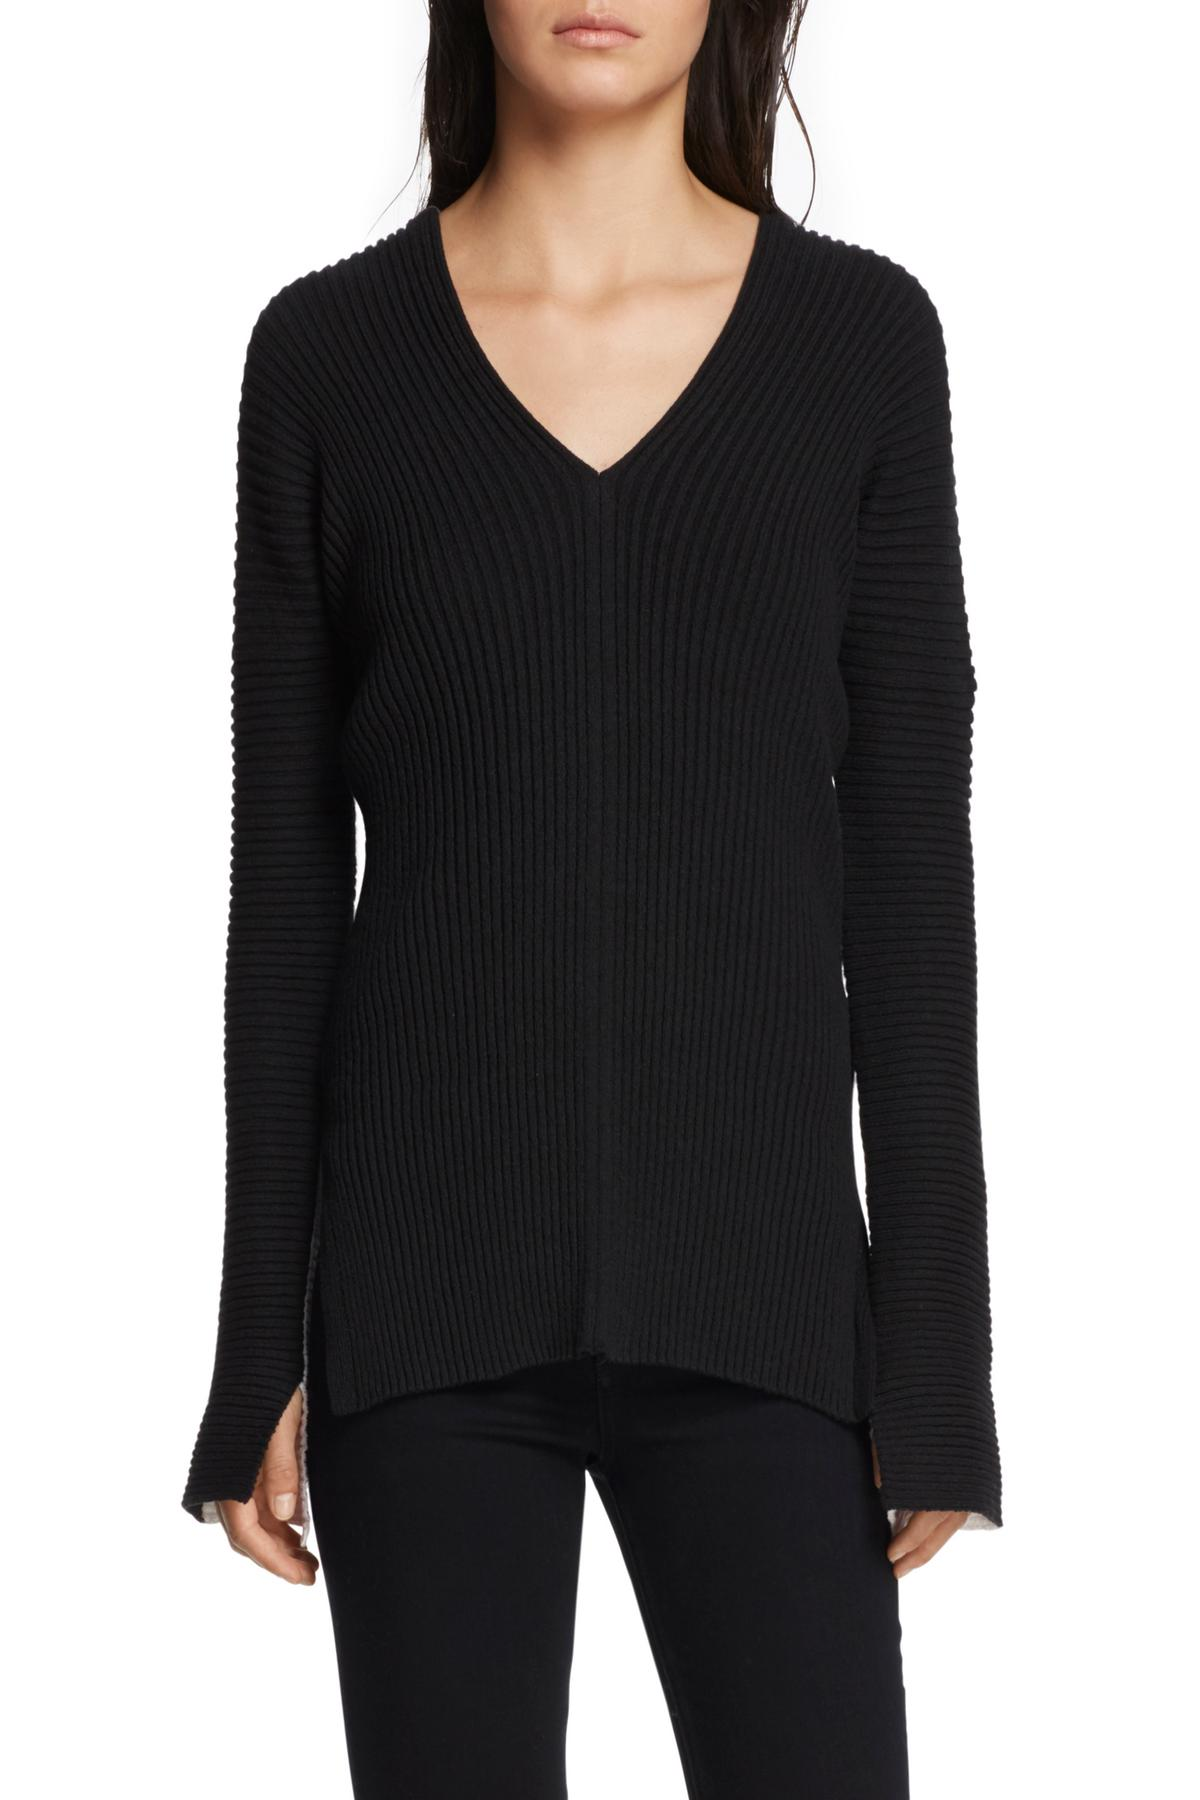 RAG & BONE FELICE TOP